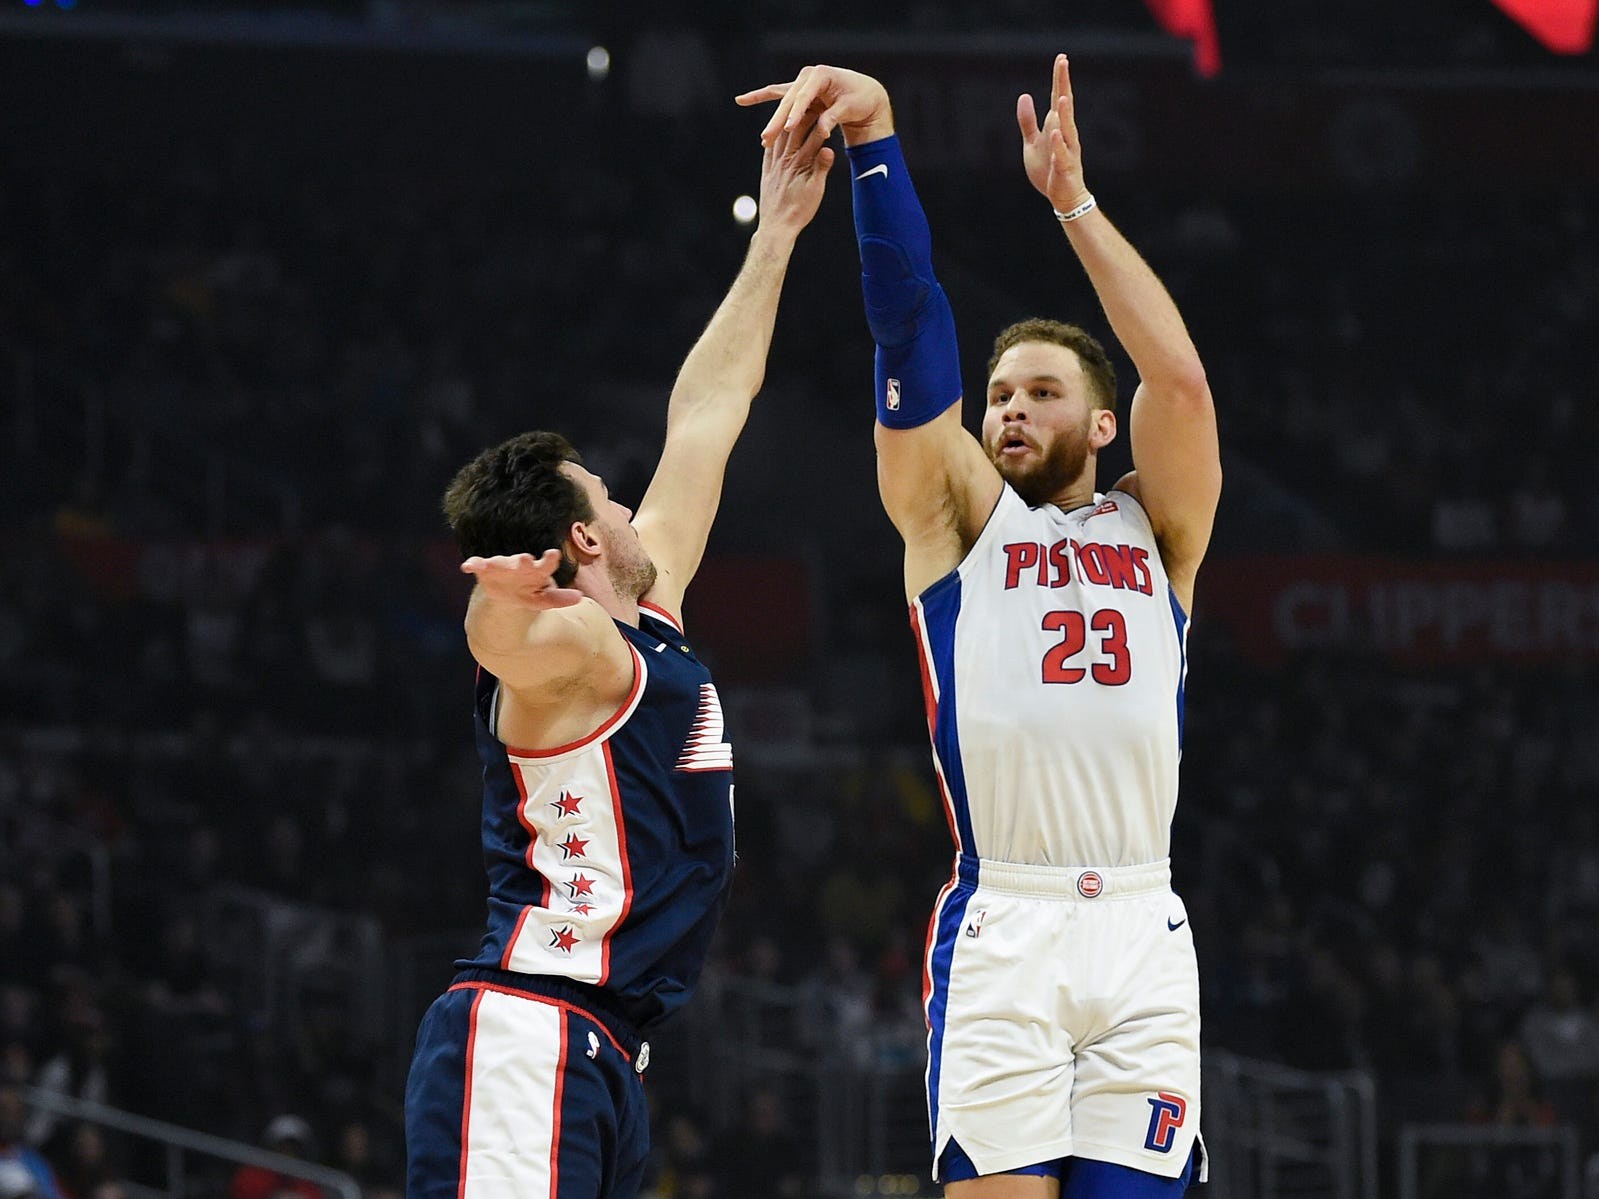 Pistons forward Blake Griffin attempts a shot defended by Clippers forward Danilo Gallinari during the first quarter on Saturday, Jan. 12, 2019, in Los Angeles.